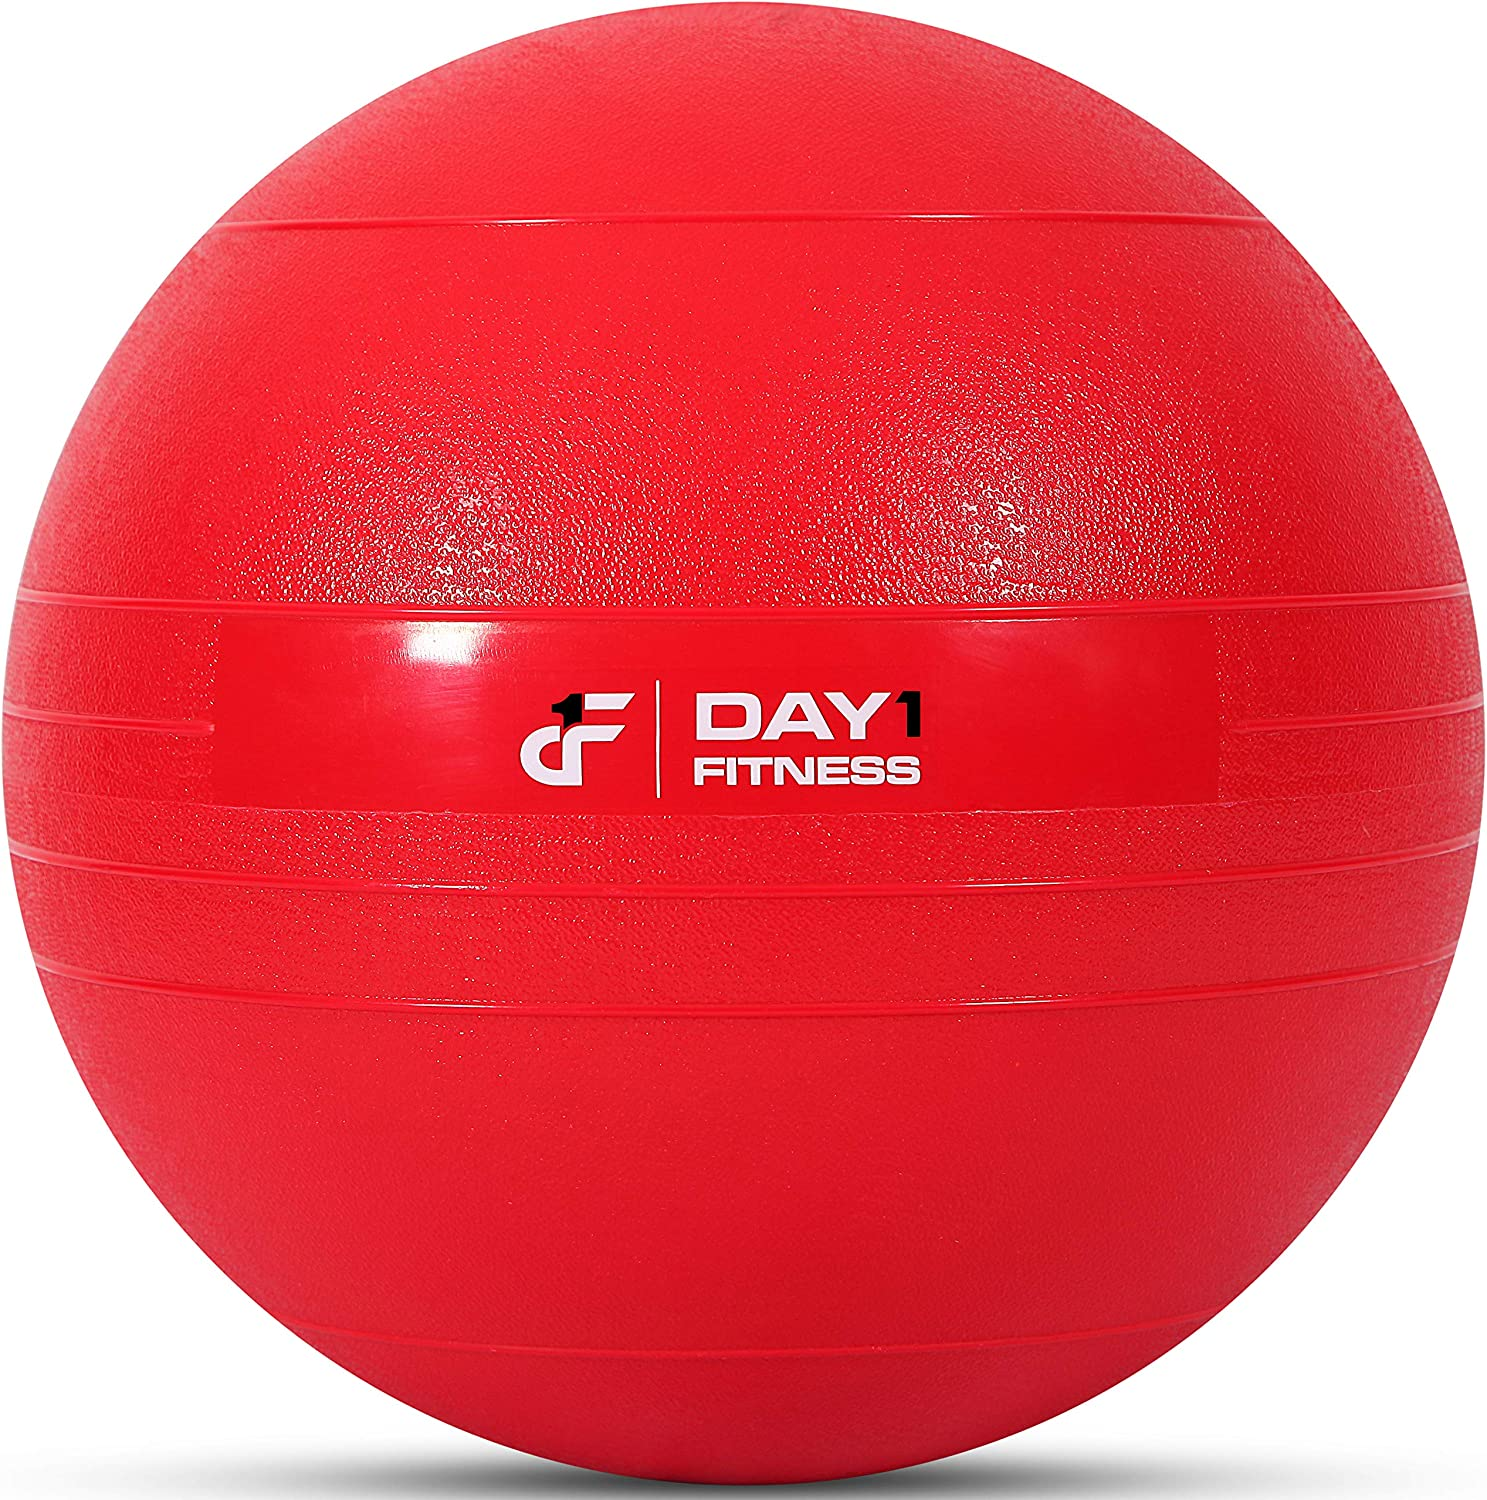 Day 1 Fitness Weighted Slam Ball - Tulsa Mall and 3 Weight Color 9 Max 80% OFF Bundle